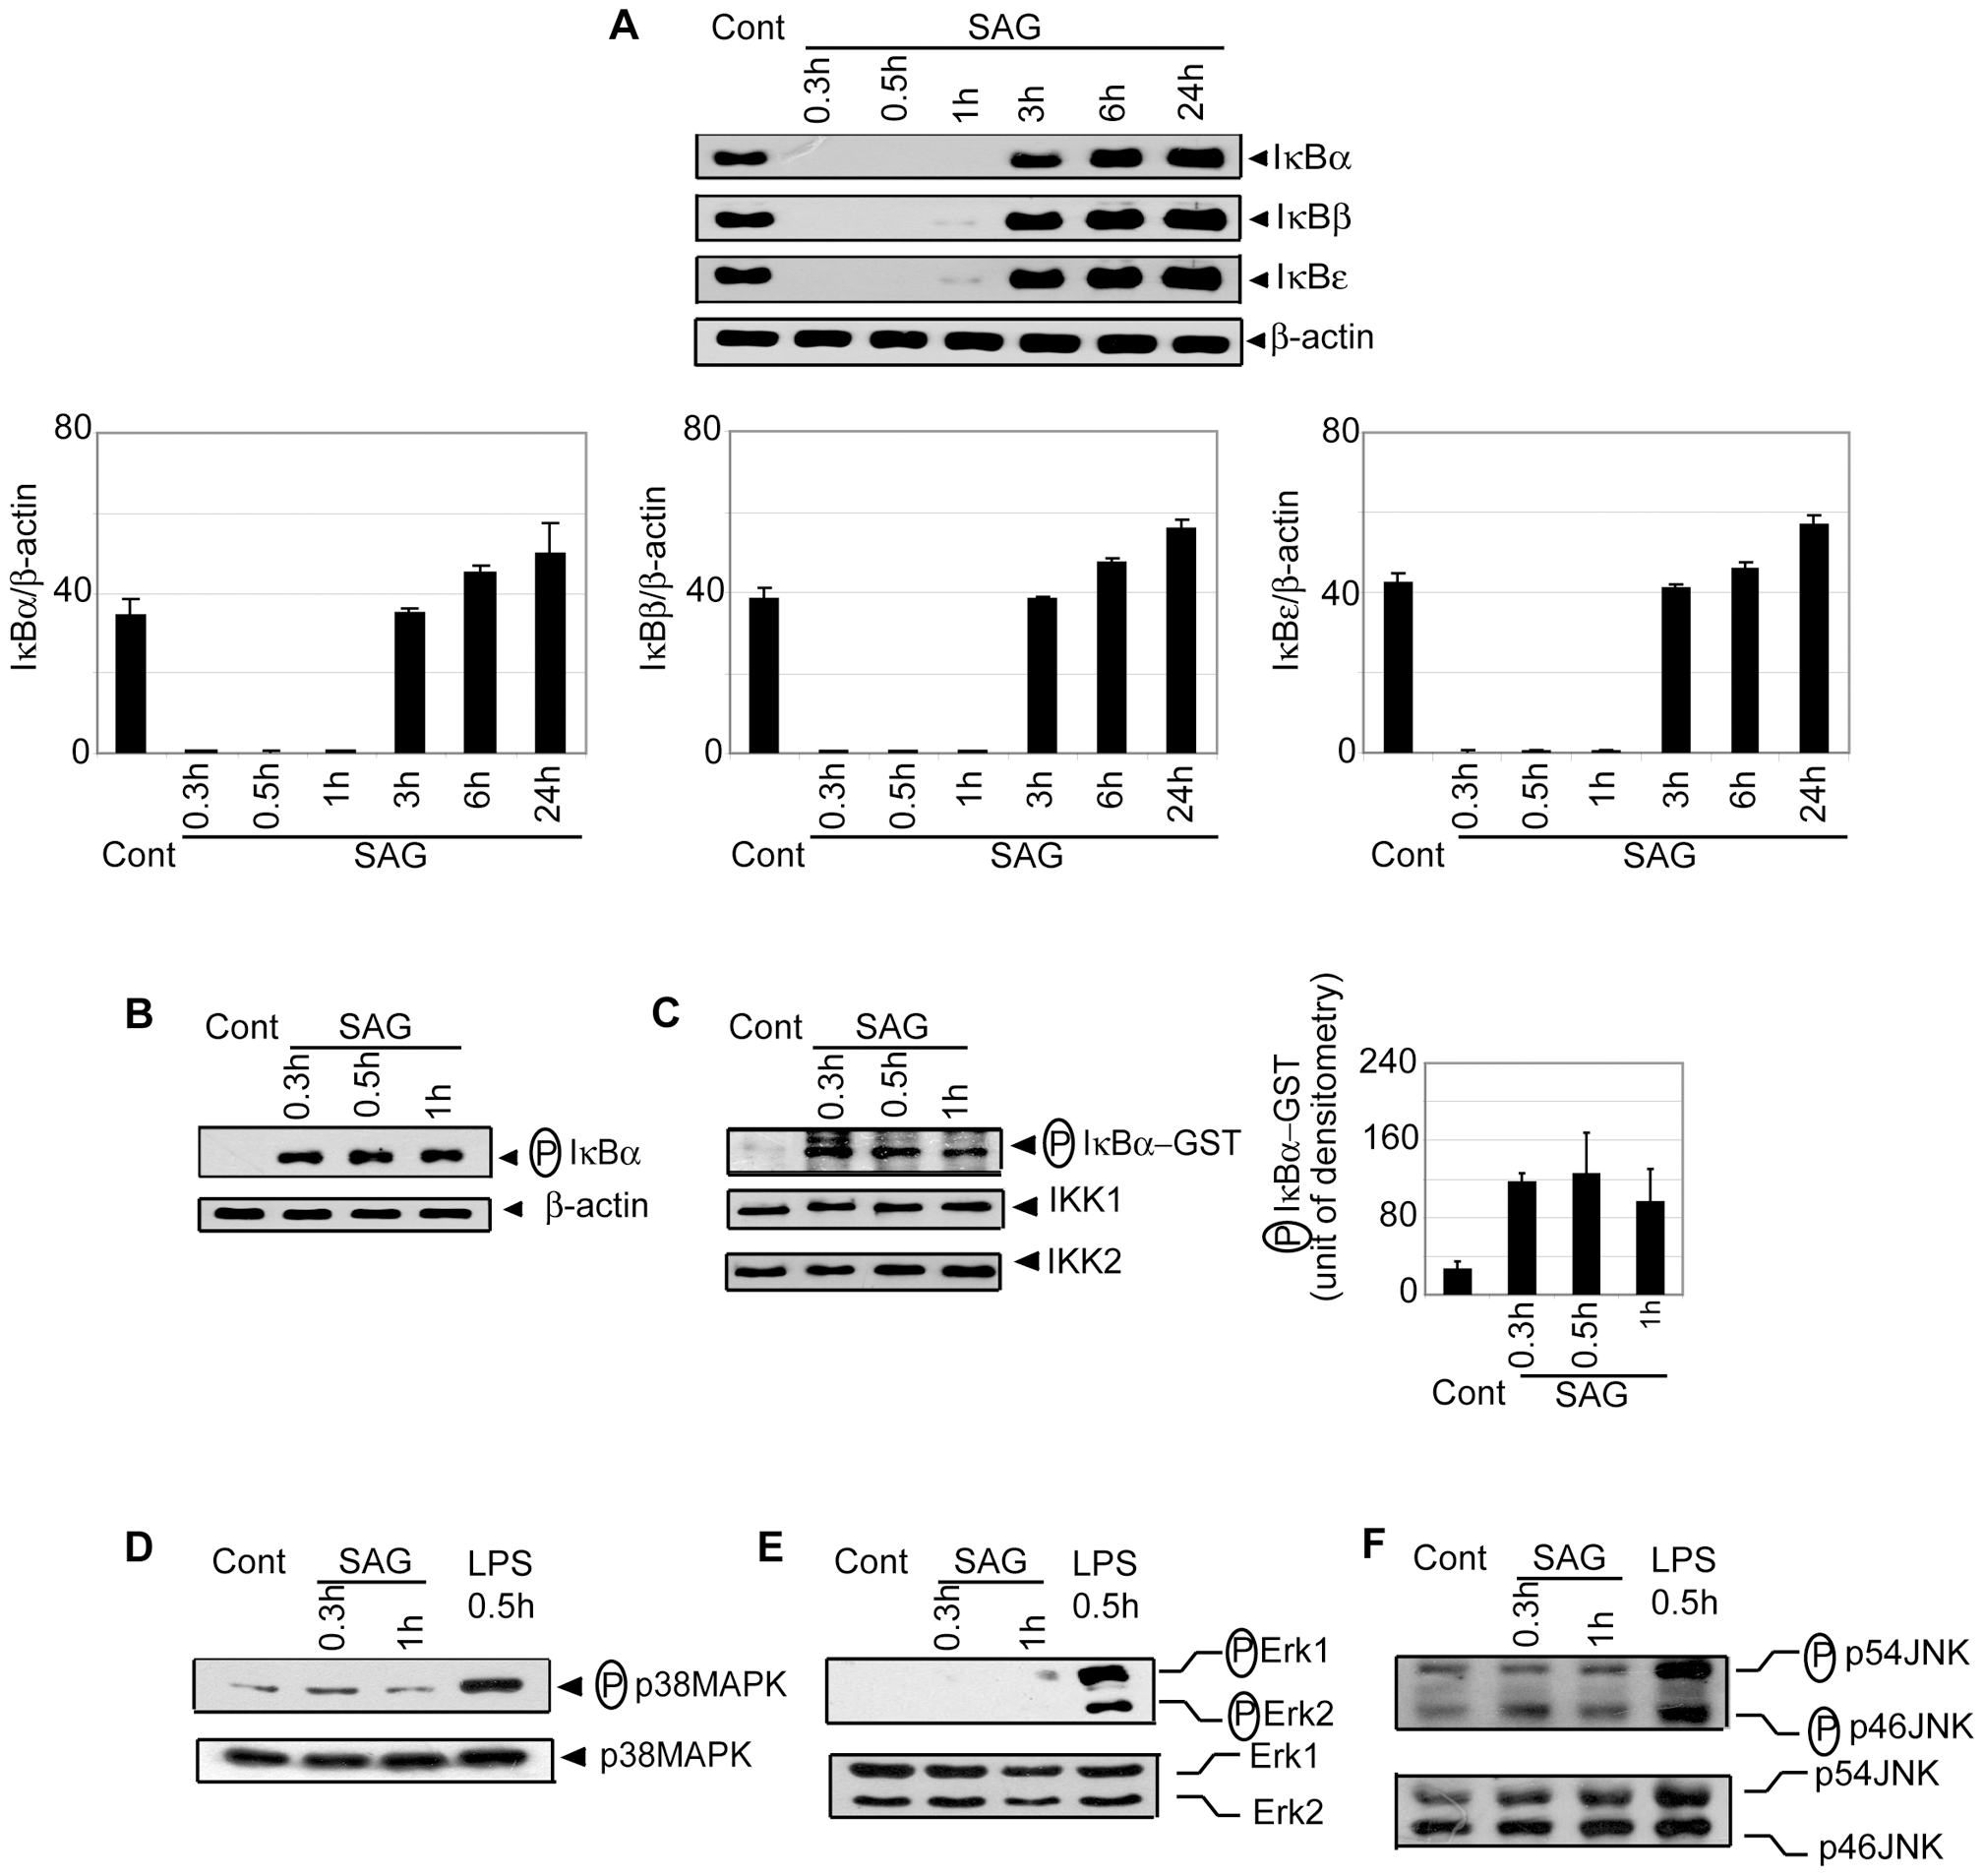 SAG-treated BMDCs exhibit increased phosphorylation and degradation of IκB proteins and IKK activity.